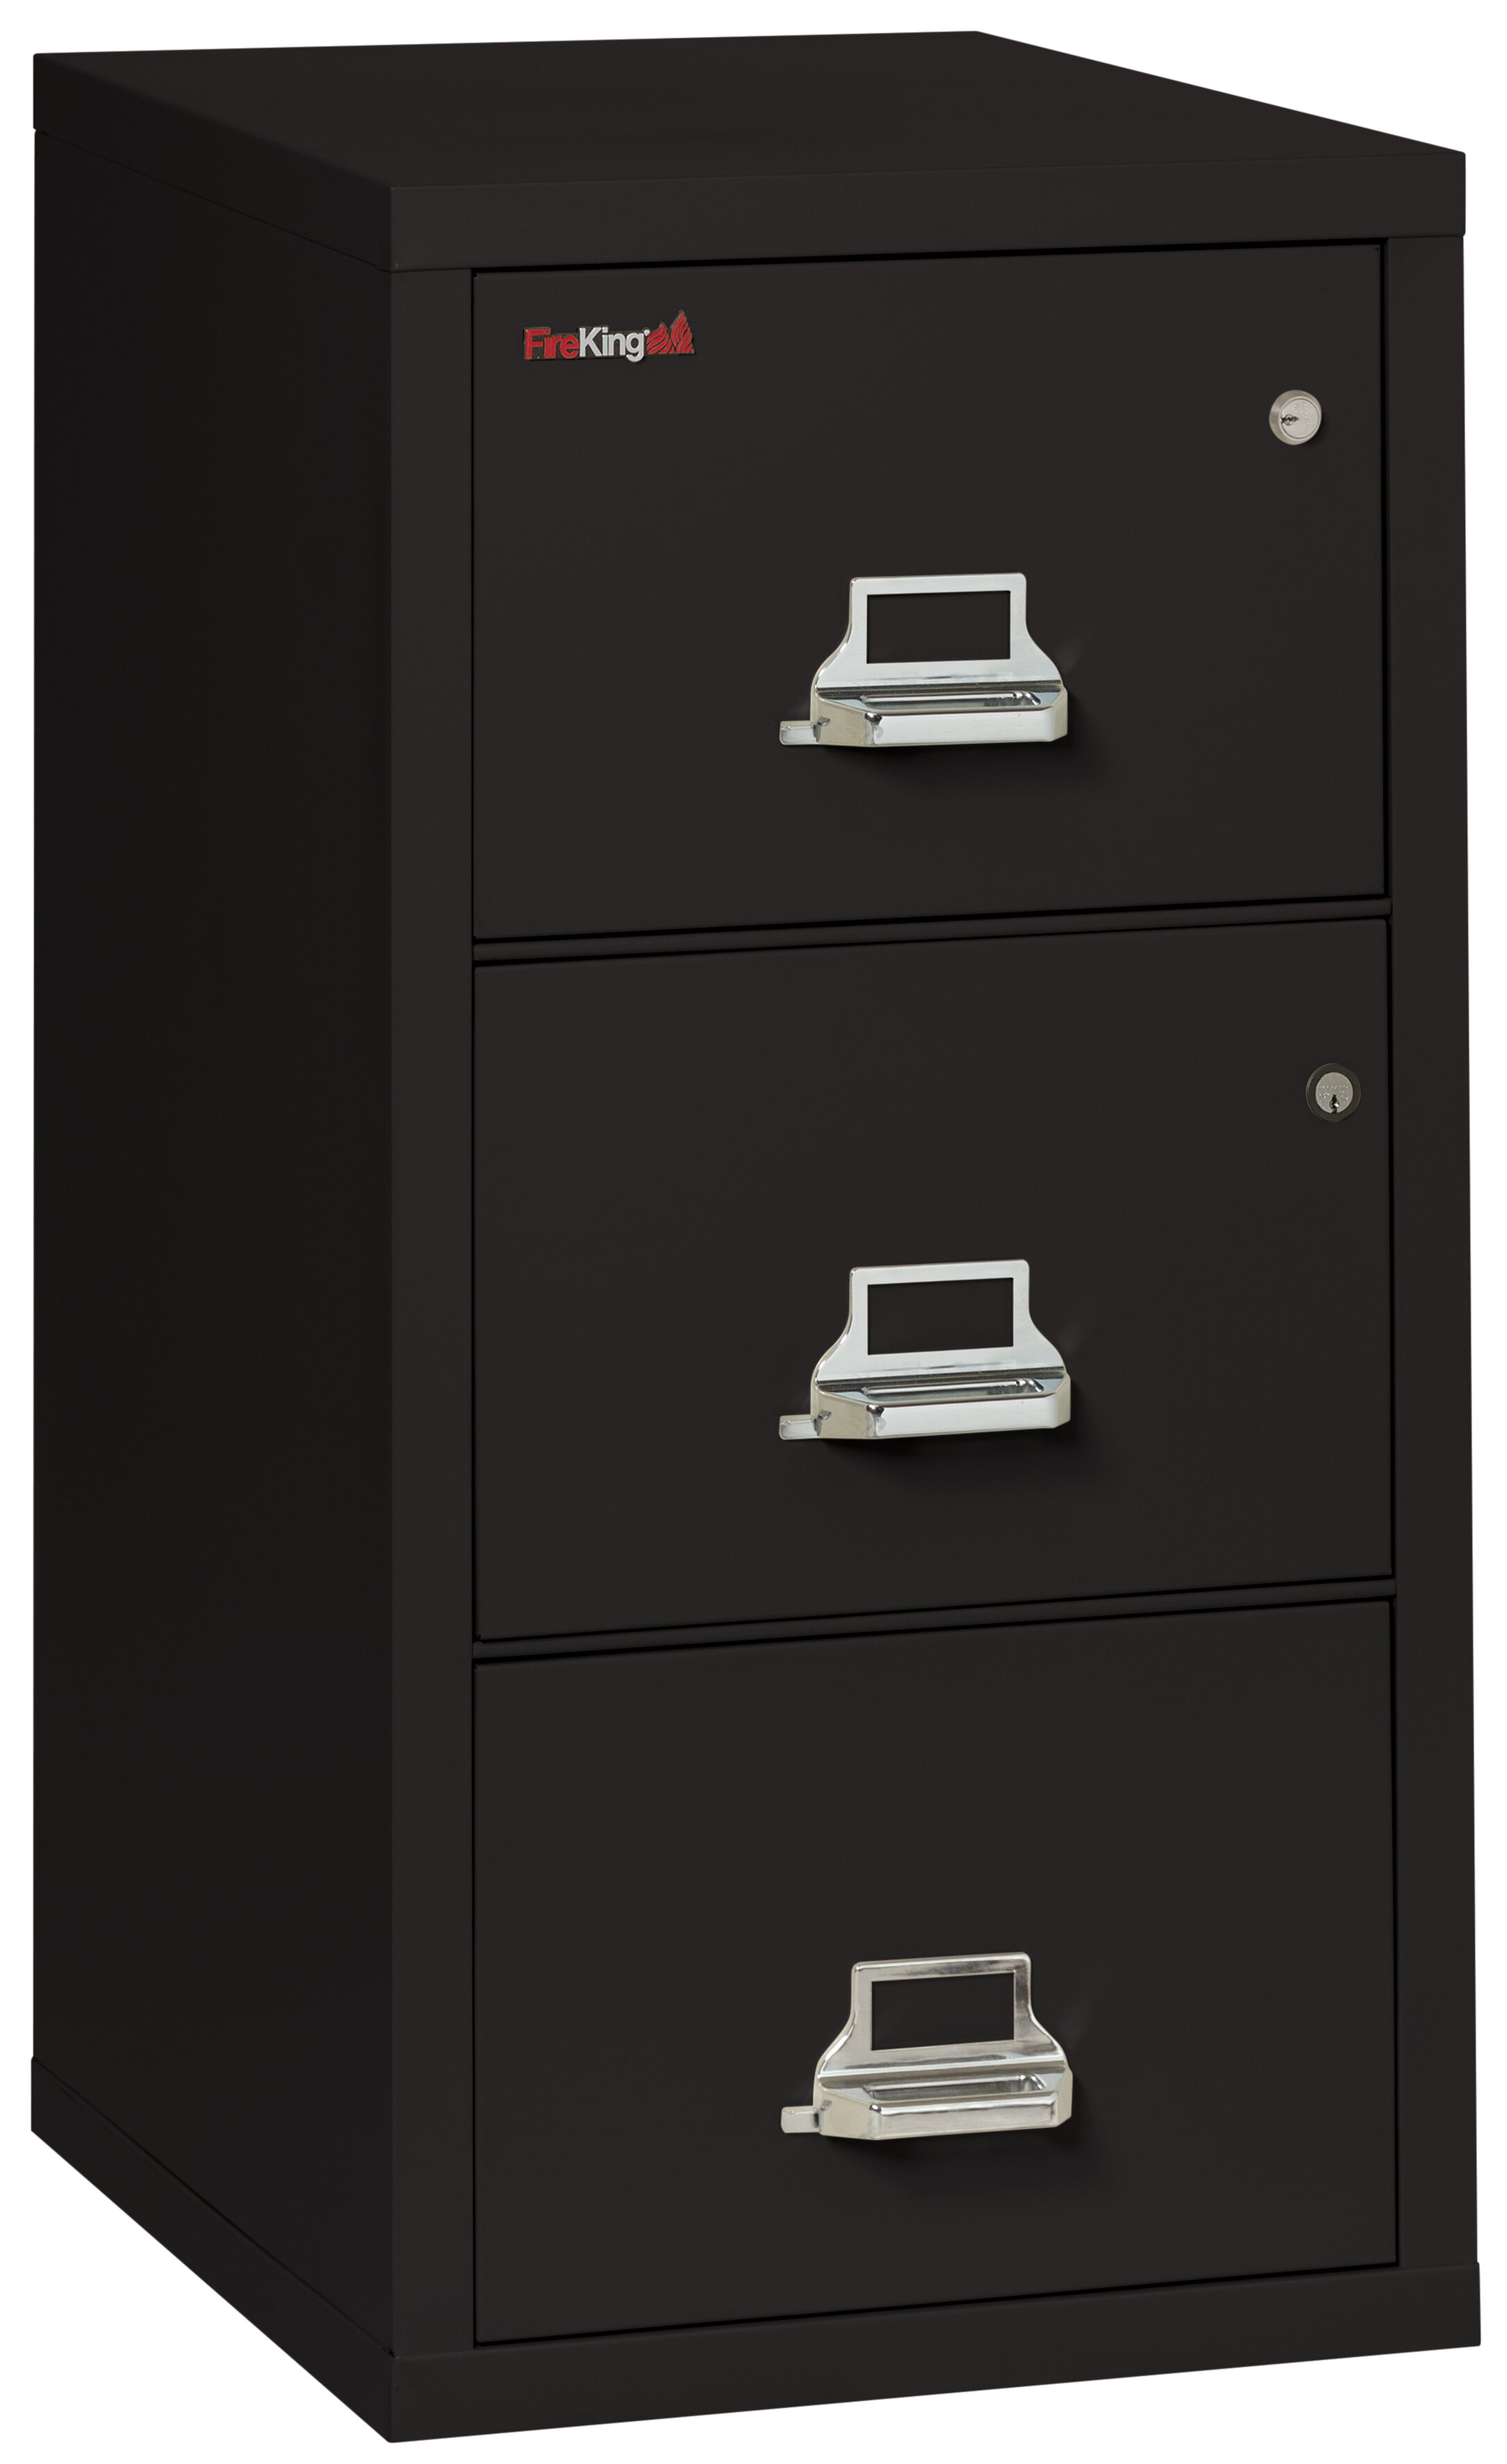 Incroyable FireKing Legal Safe In A File Fireproof 3 Drawer Vertical File Cabinet |  Wayfair